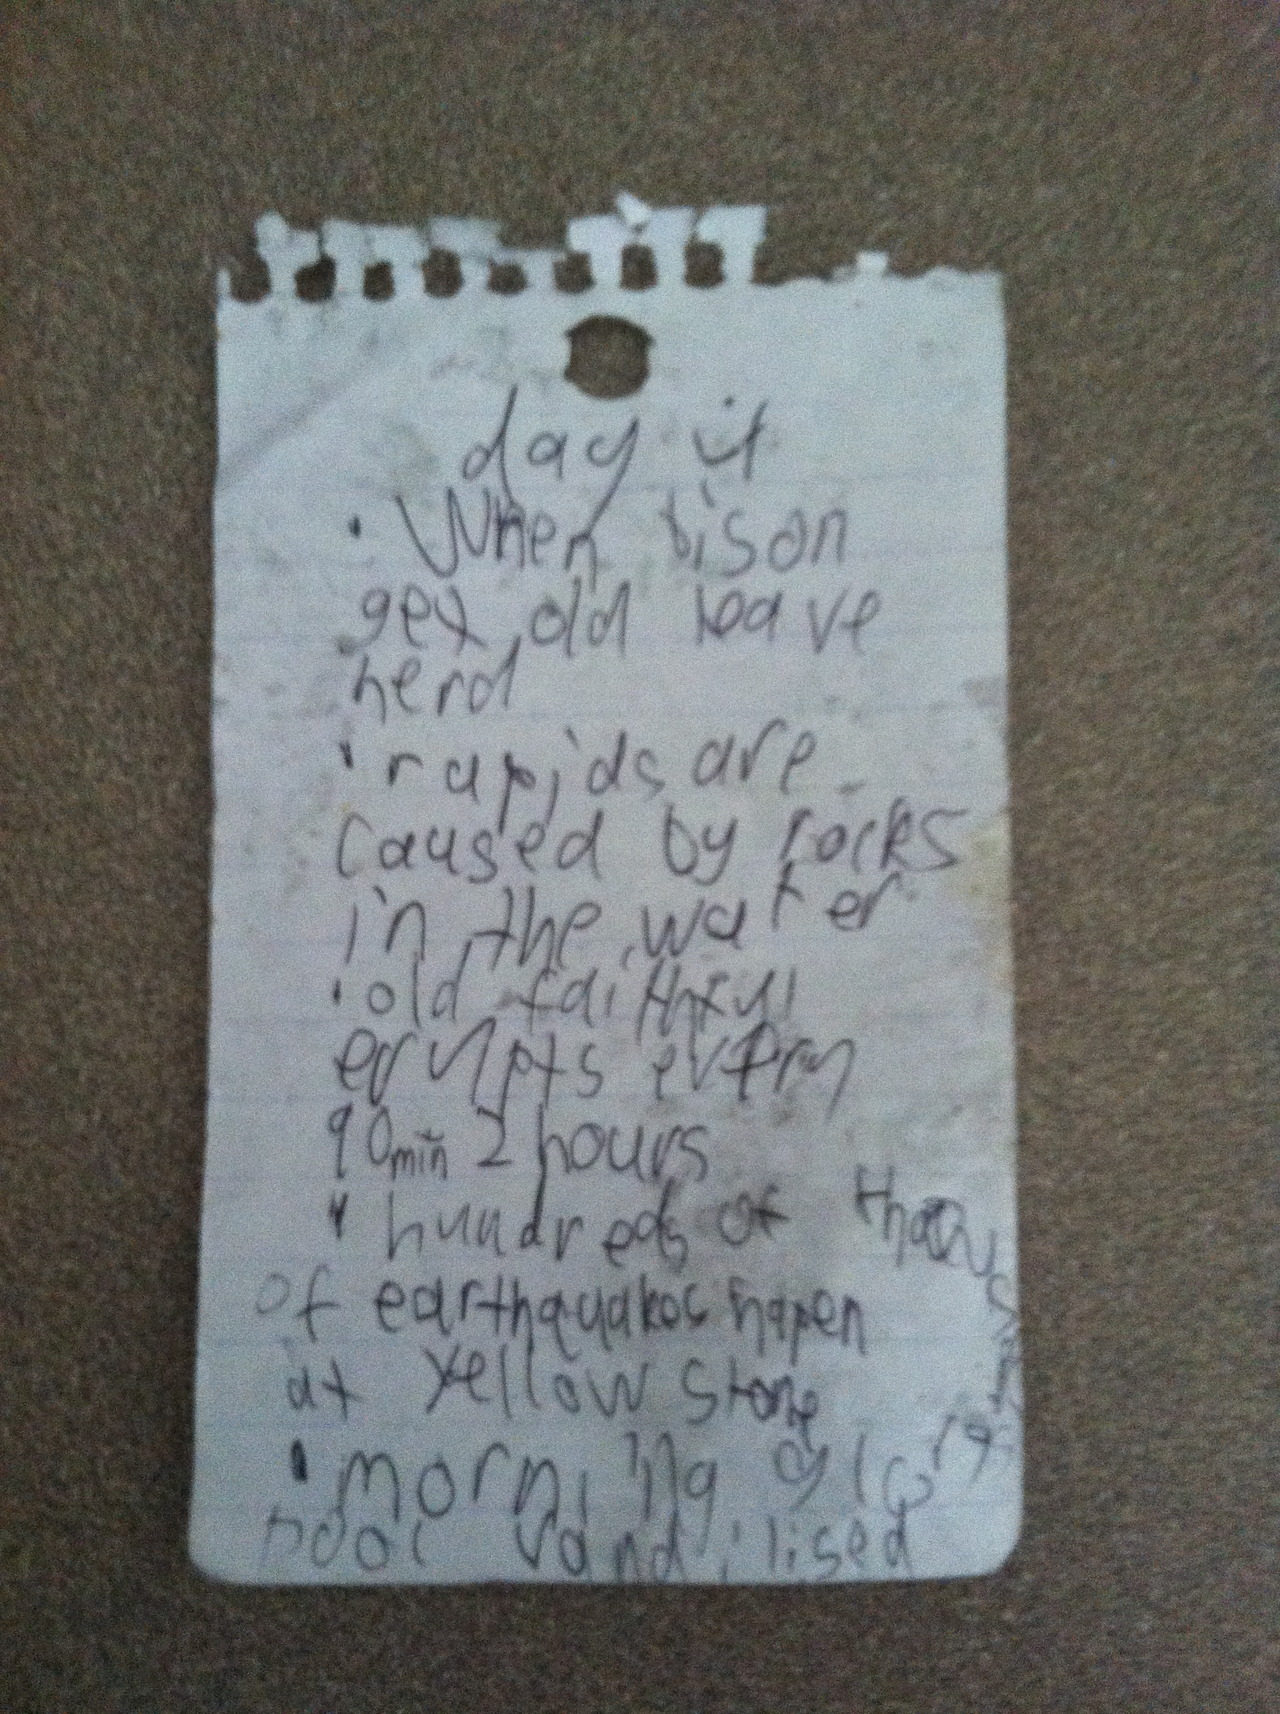 We found this piece of paper on in the grass near the picnic table outside of our house. I don't know who this kid is, but clearly, he/she is my spirit animal. Meticulous notes for Day 4 of his/her Yellowstone trip.  Did you know that hundreds of earthquakes happen at Yellowstone? Well now you do, courtesy of this super awesome kid.